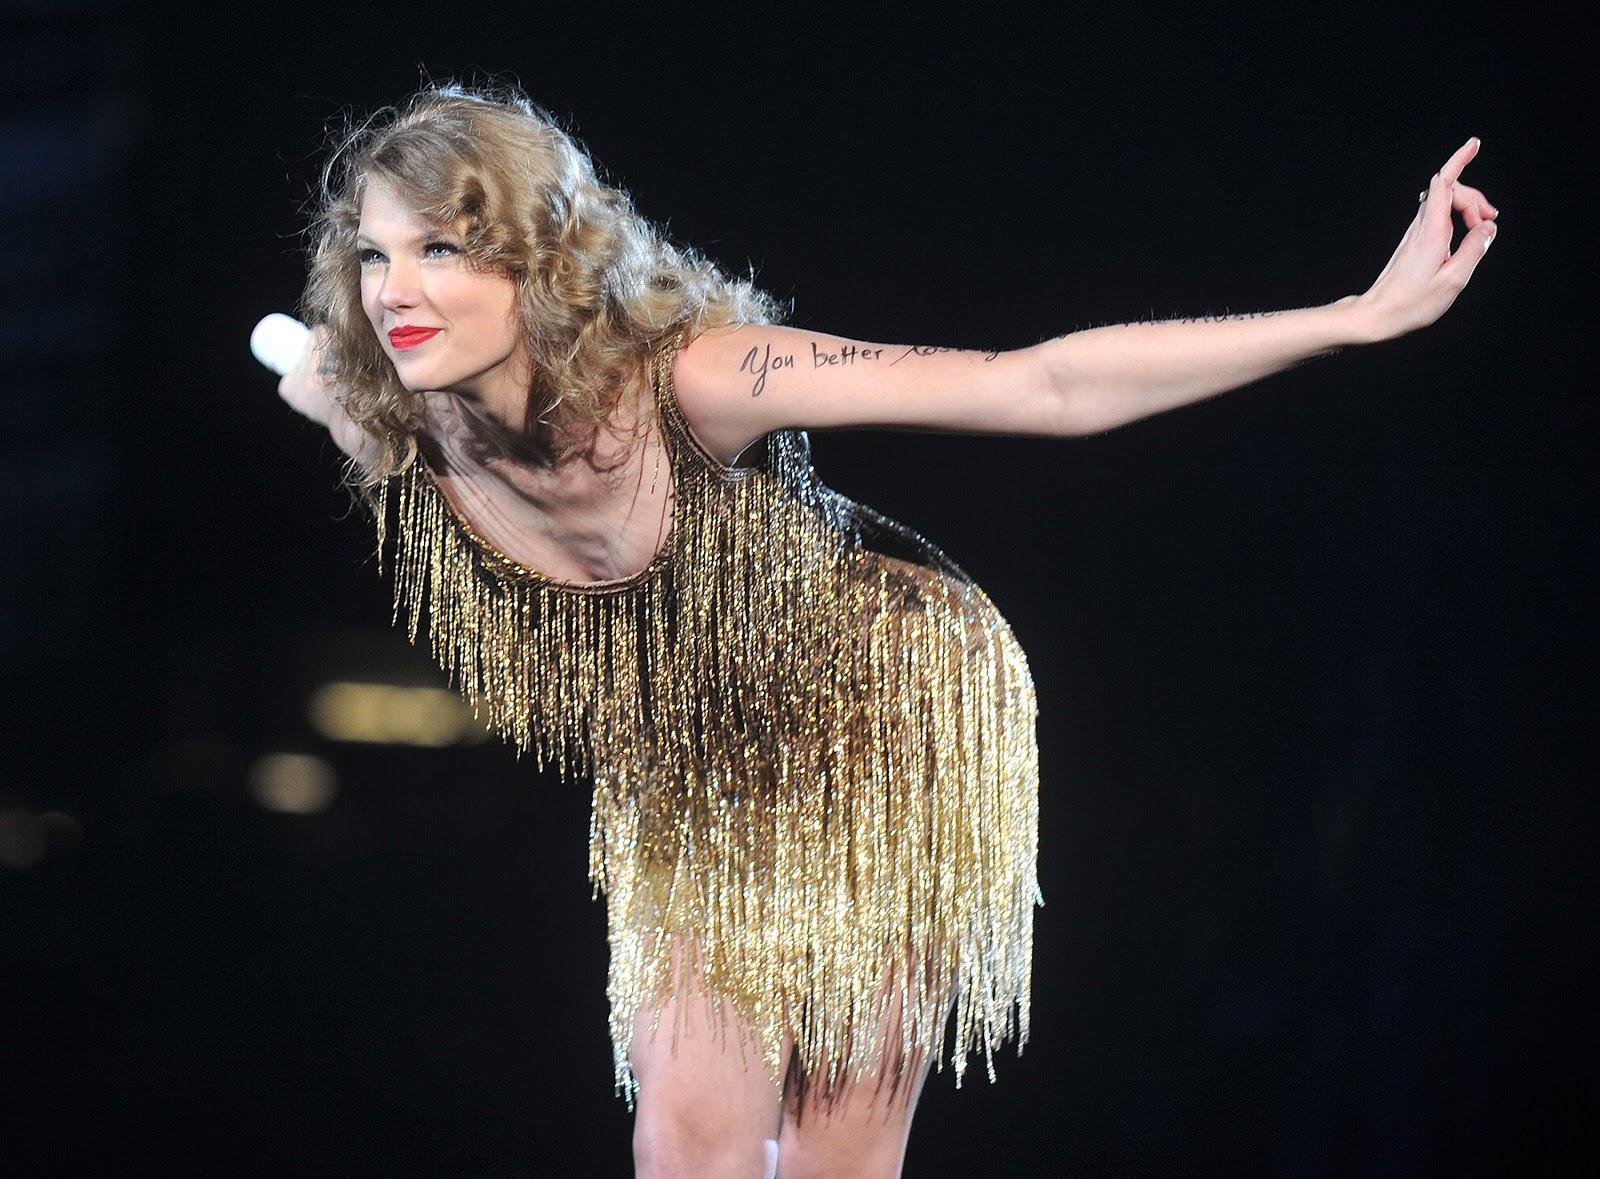 Taylor Swift is a major influence in the music industry. Her fanbase mostly consists of young girls who look up to her as a role model.